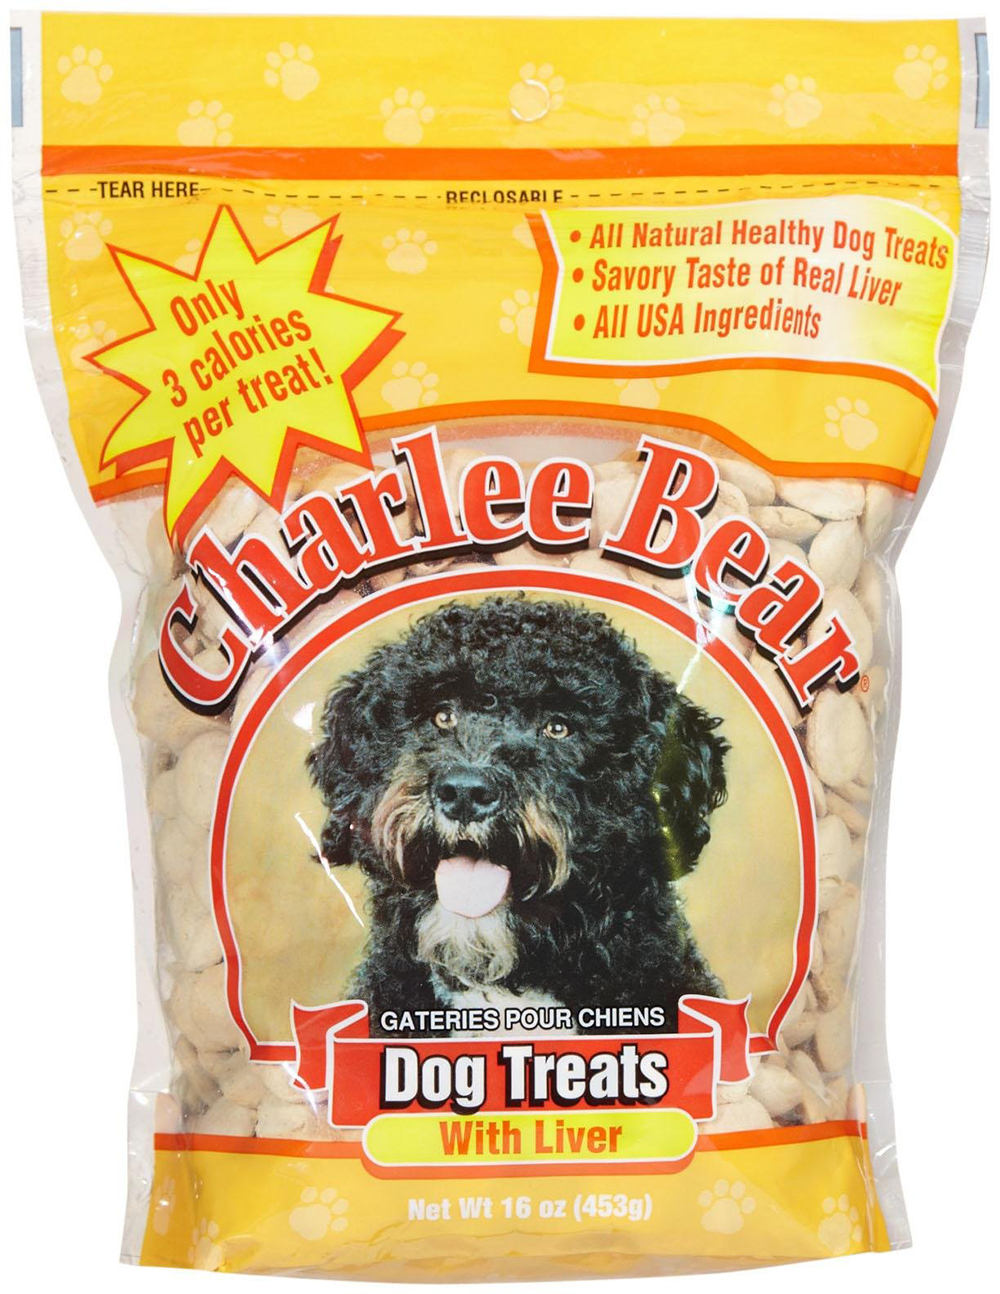 Royal Canin Puppy Food >> Charlee Bear Treats Liver 16 OZ